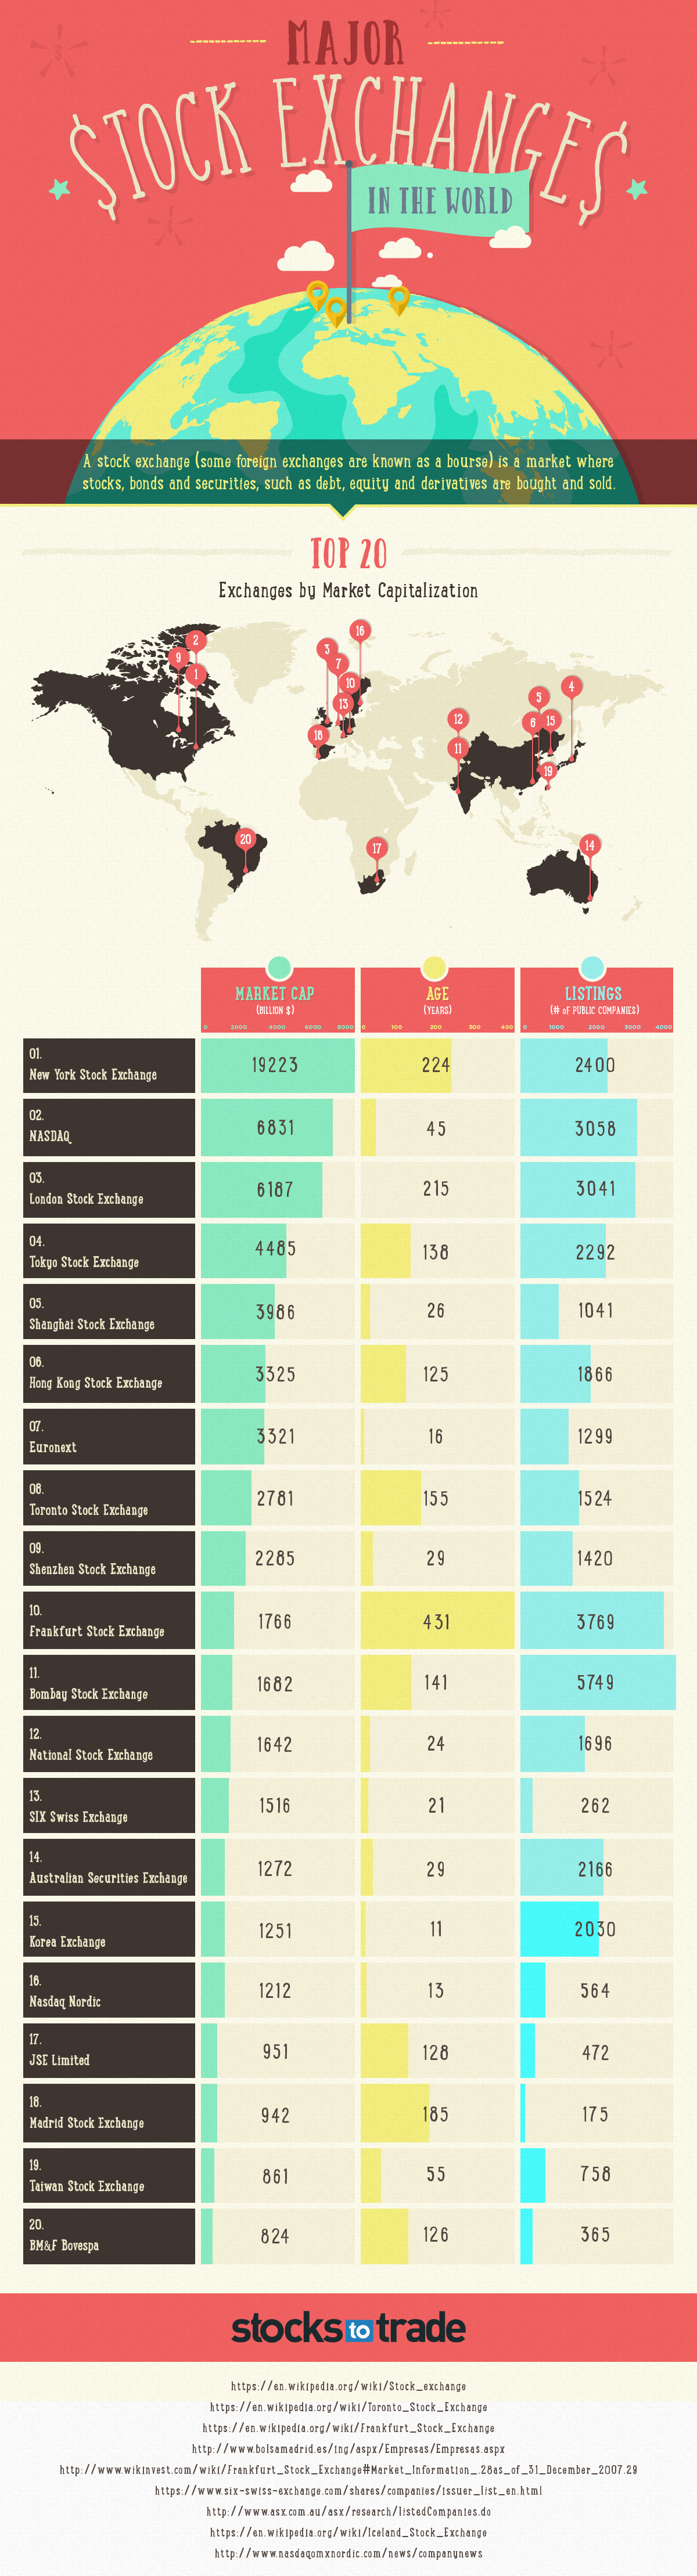 Top 20 Stock Exchanges by Market Capitalization - Infographic